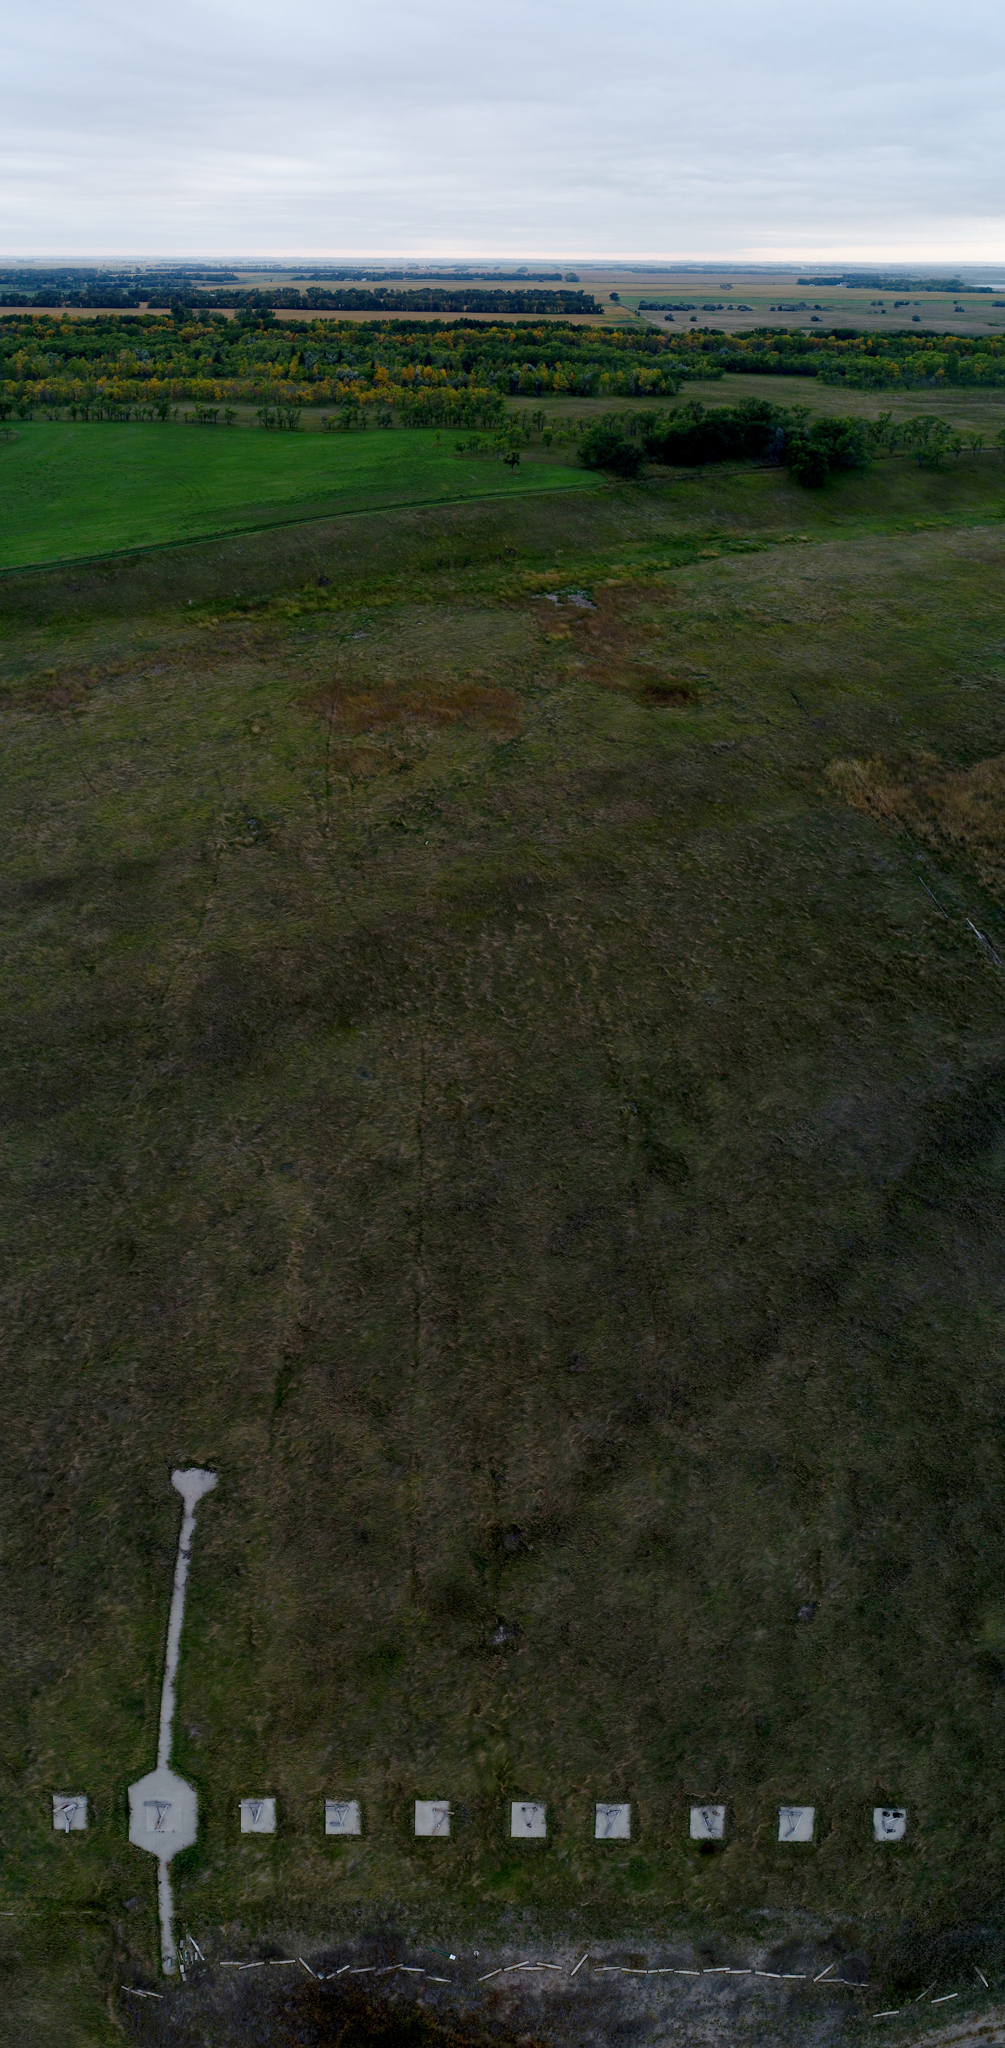 The abandoned Pipestem Rifle Range is seen in this composite image.